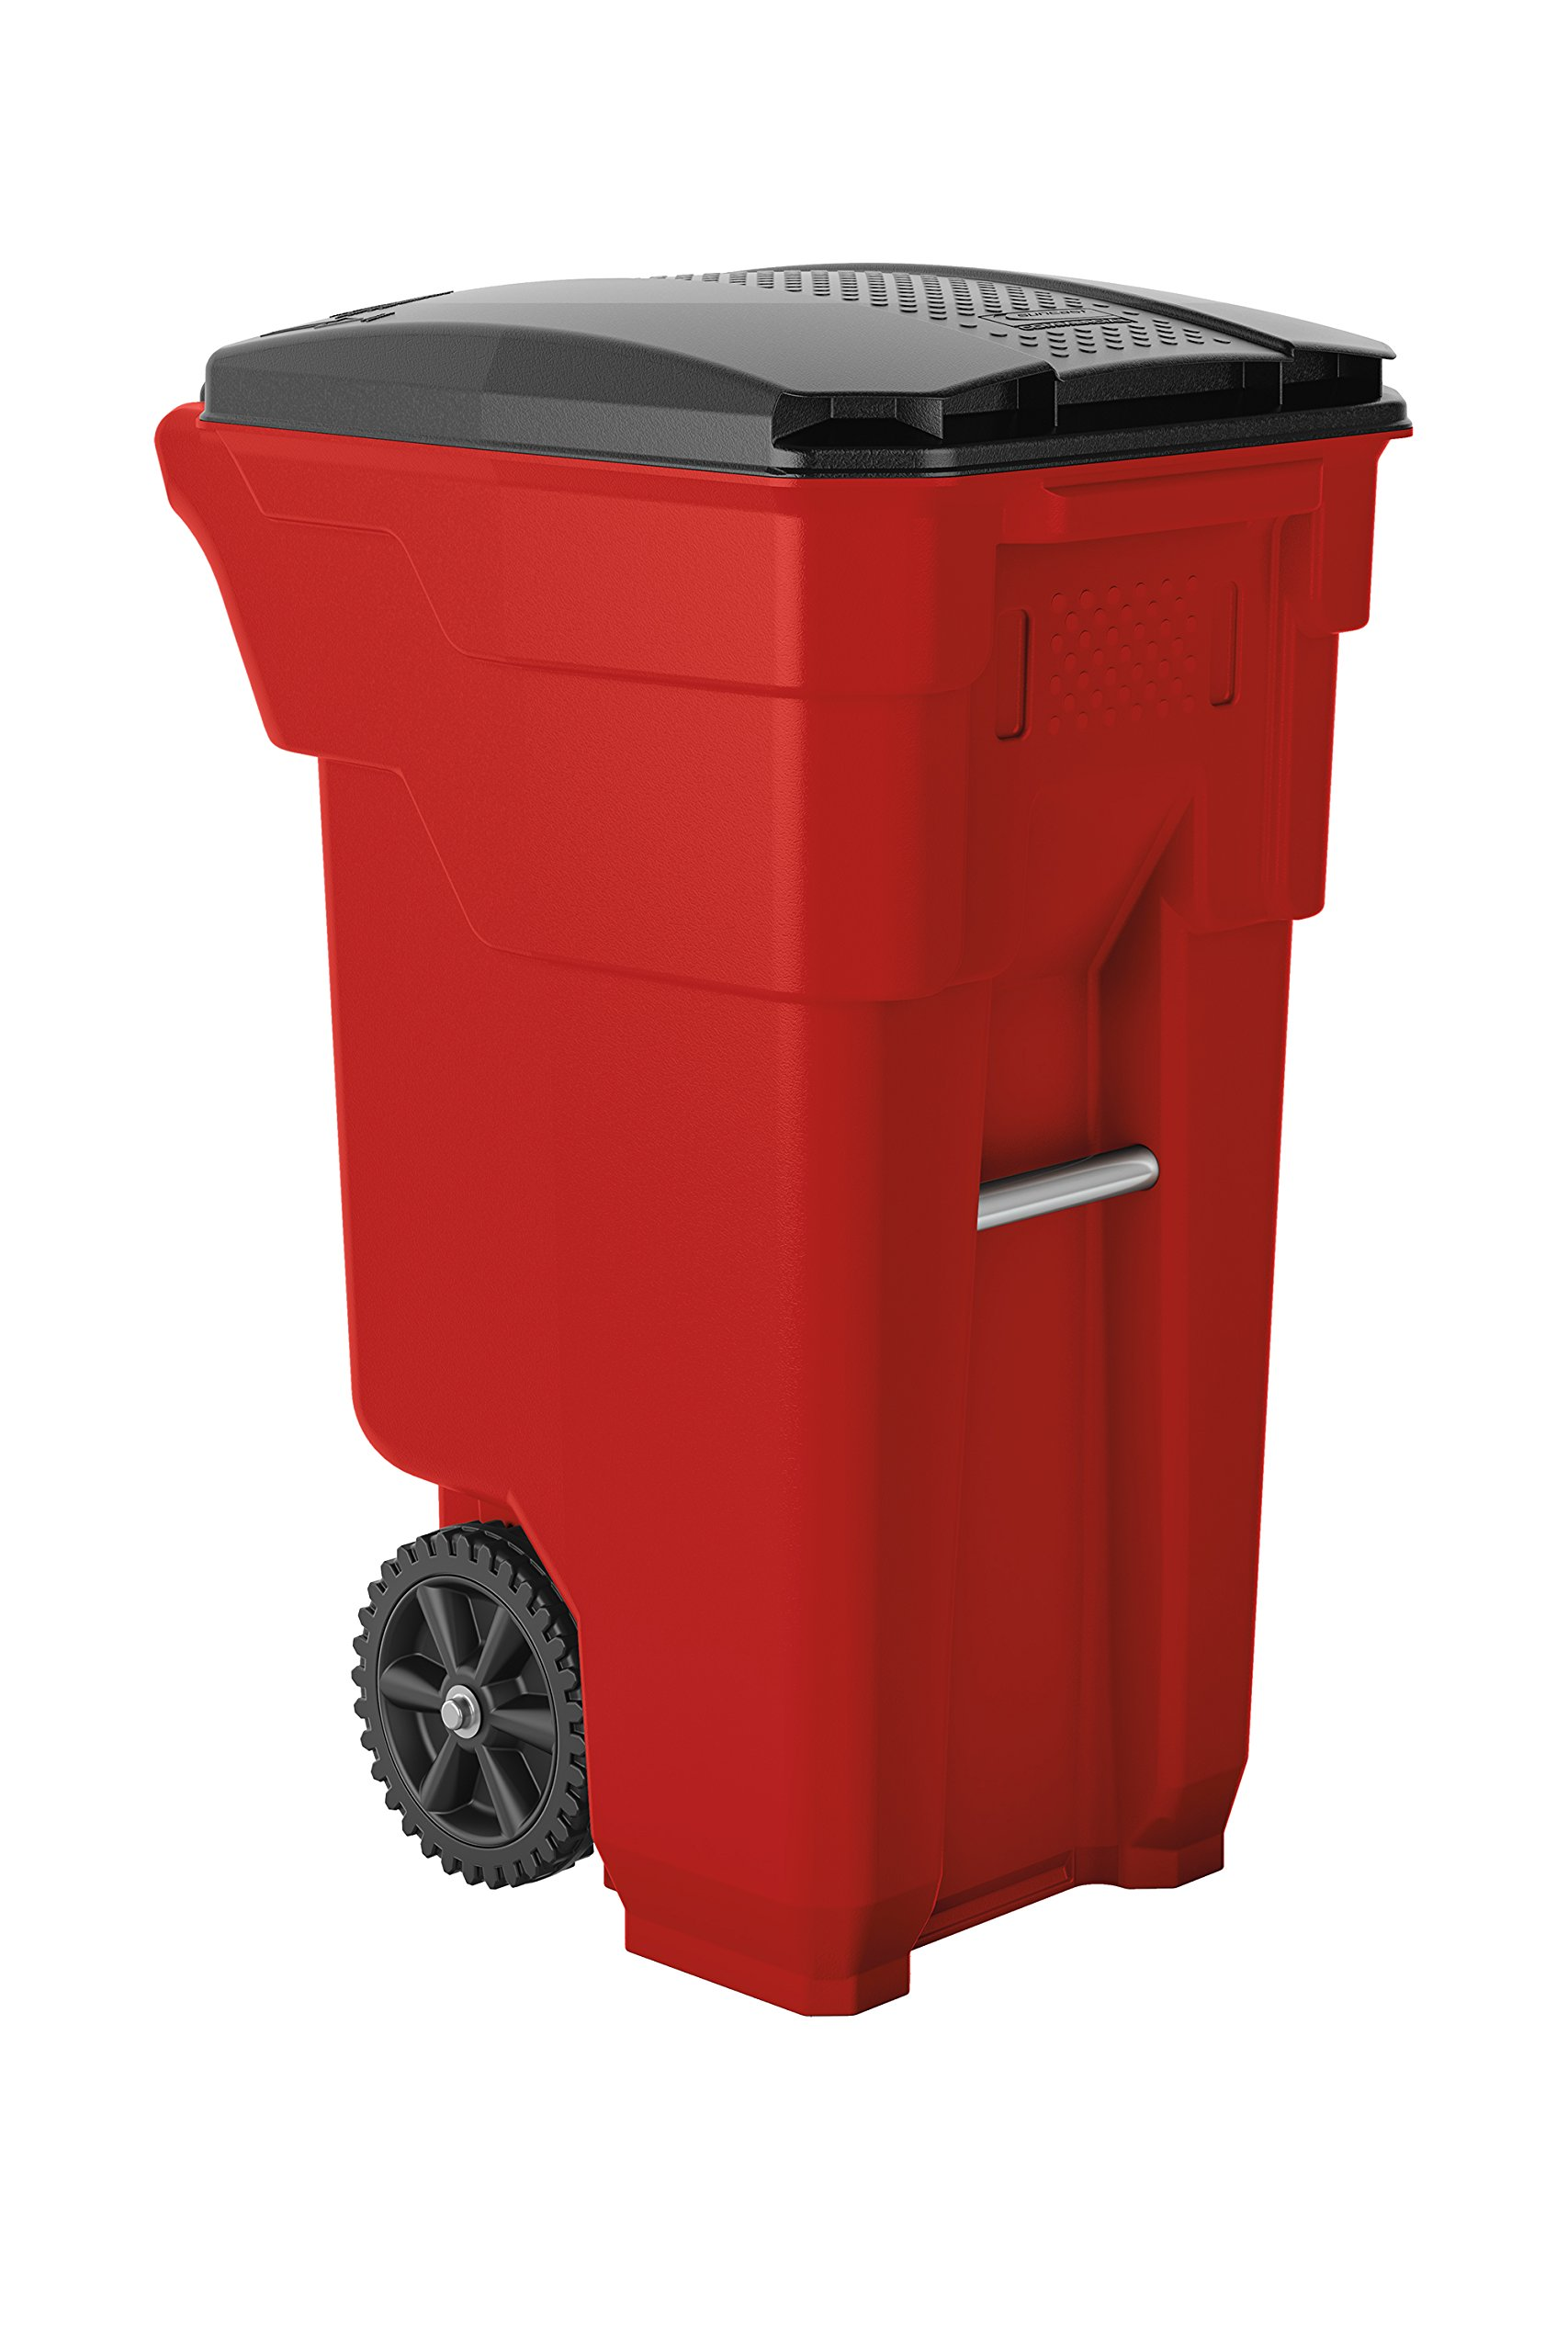 Suncast Commercial BMTCW32R Wheeled Trash Can, 36.5'' Height, 20.25'' Width, 26.5'' Length, 32 gal Capacity, Polyethylene, Red